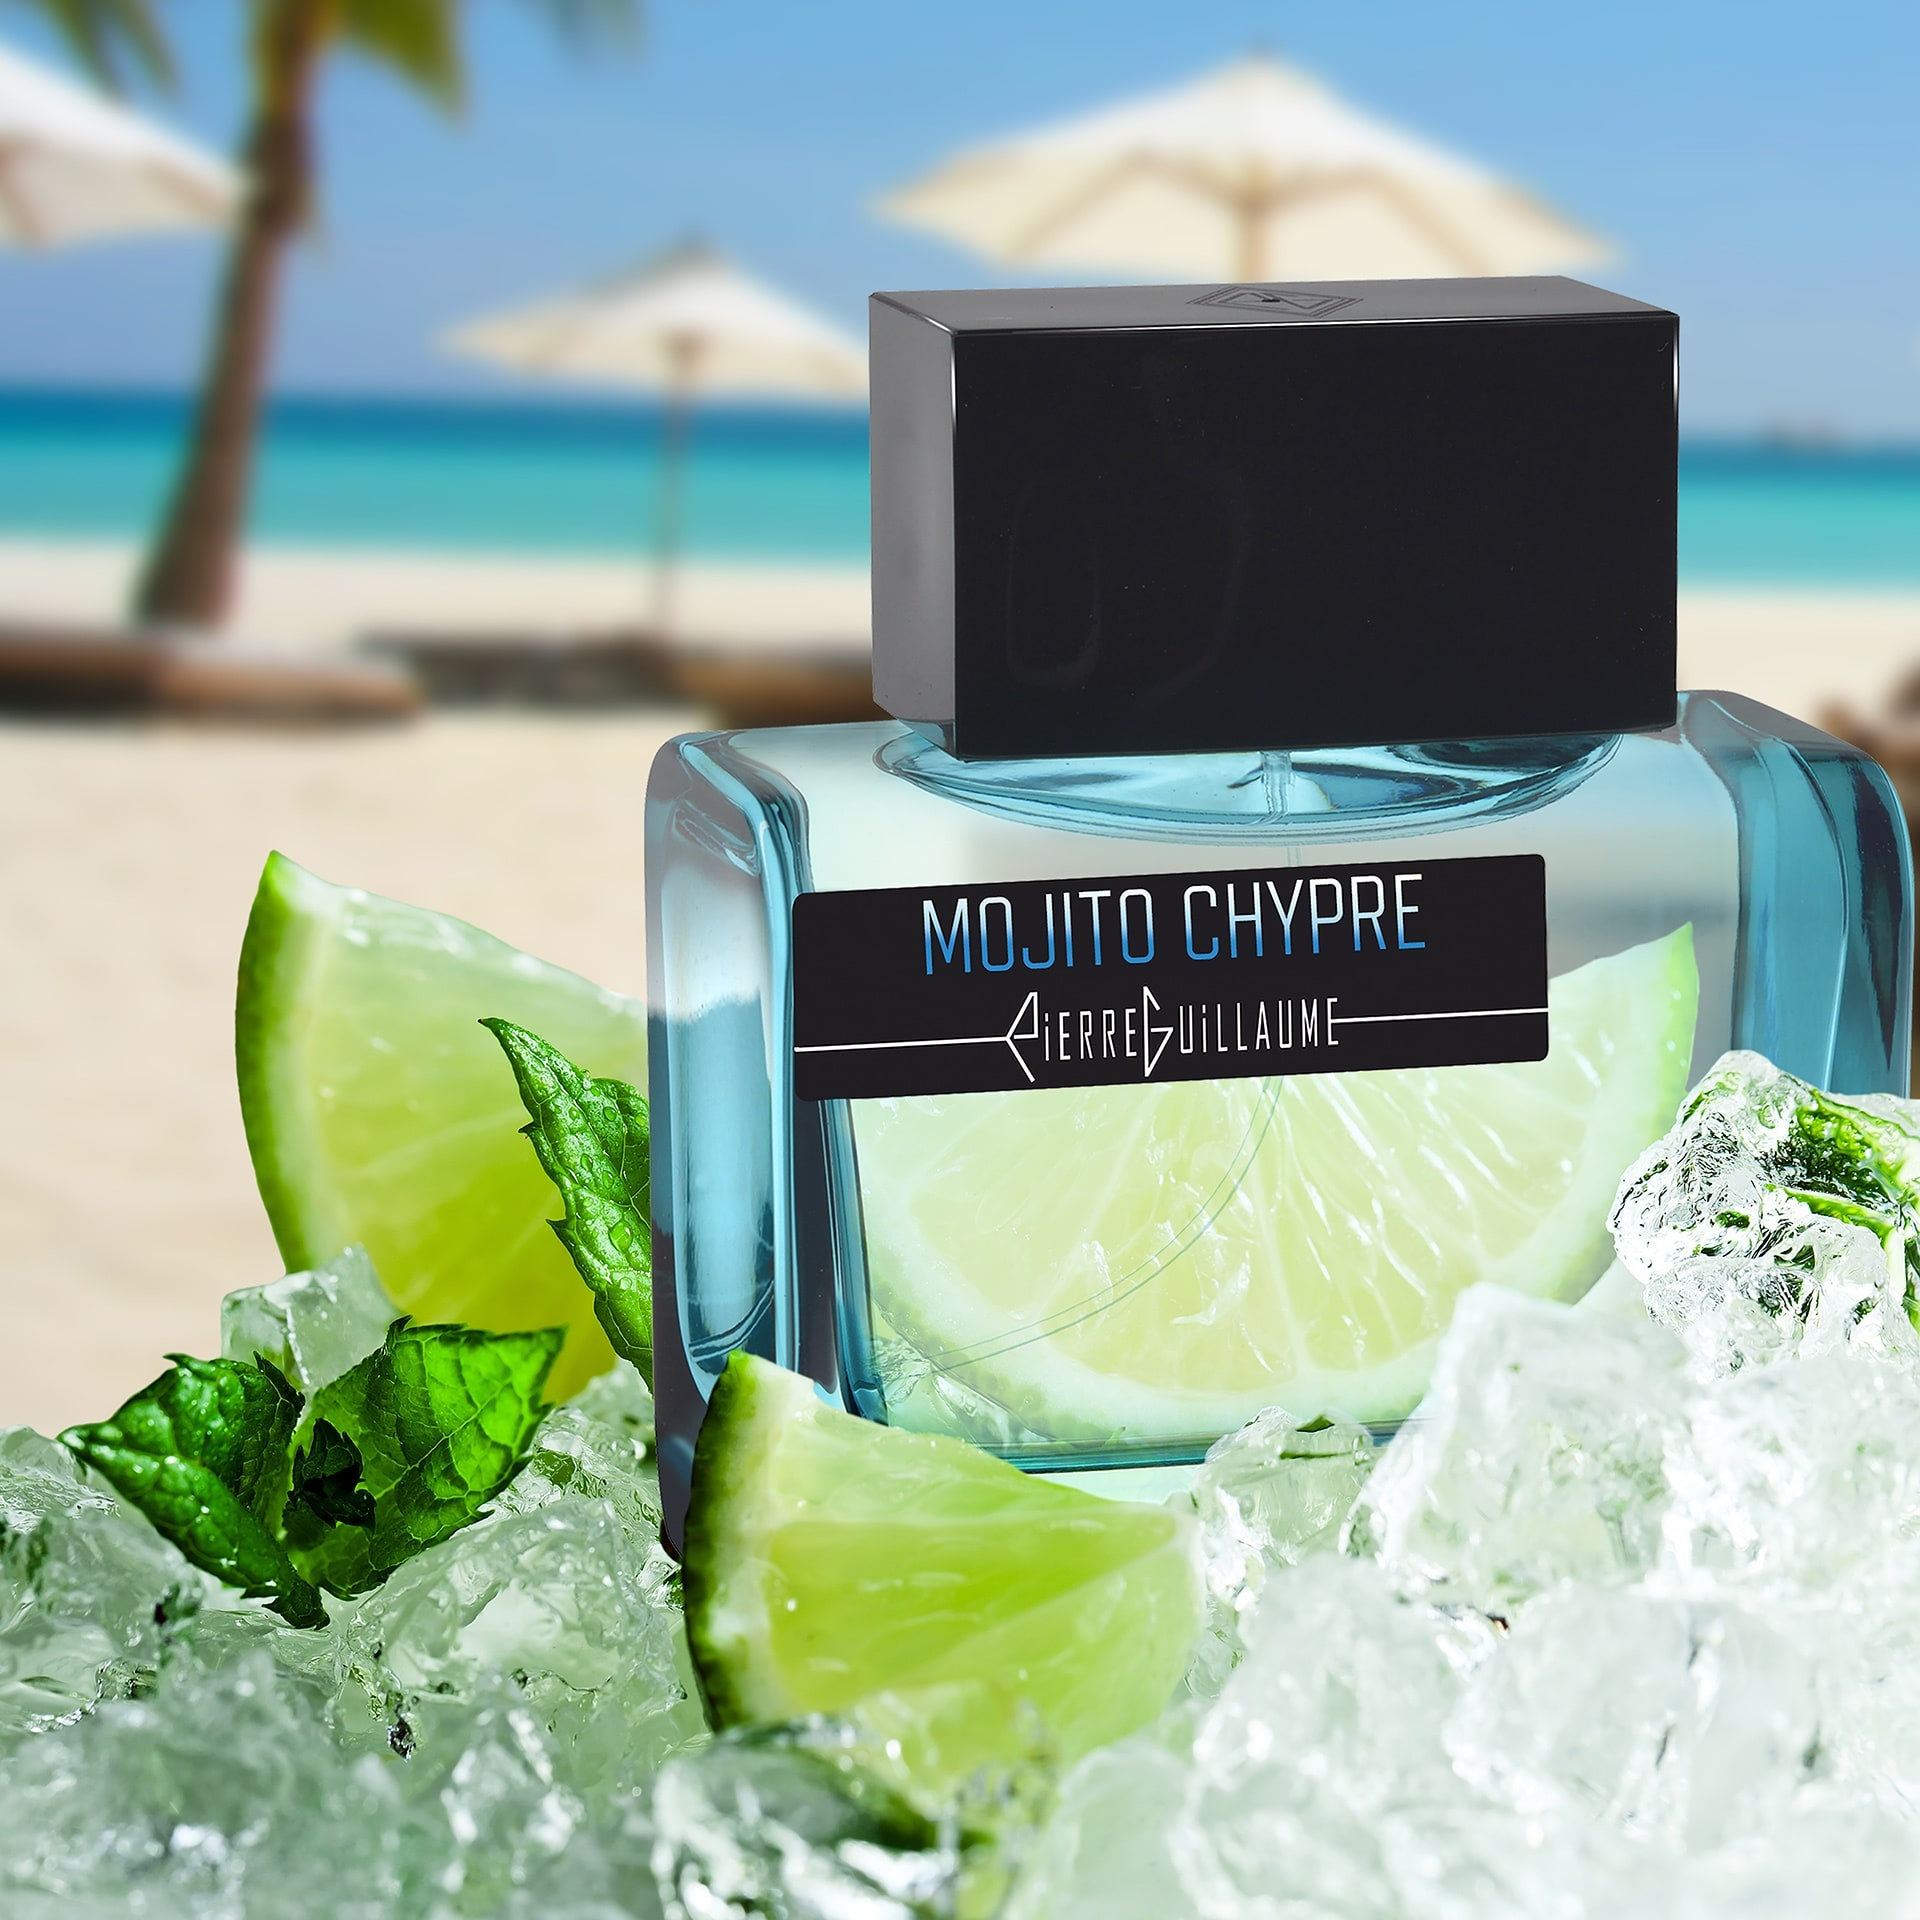 Ароматы Pierre Guillaume Collection Croisiere Mojito Chypre